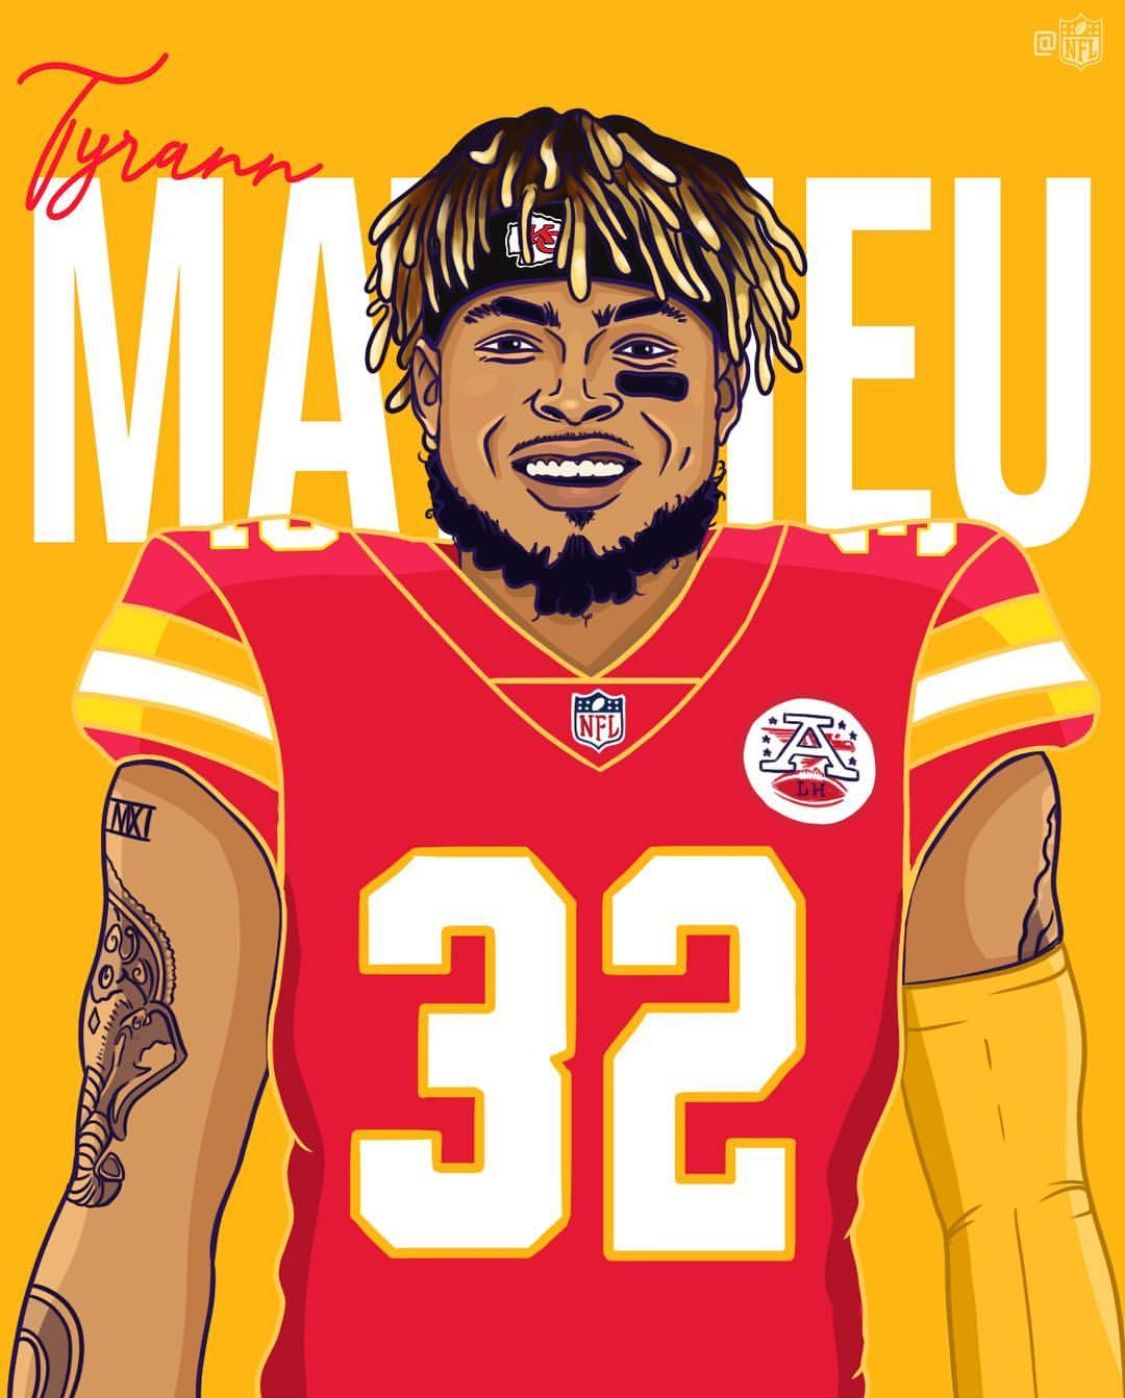 Tyrann Mathieu Great Pickup Got Kansas City Hopefully They Keep Eric Berry And Have These Two Together Nfl Football Pictures Kansas City Nfl Nfl Football Art